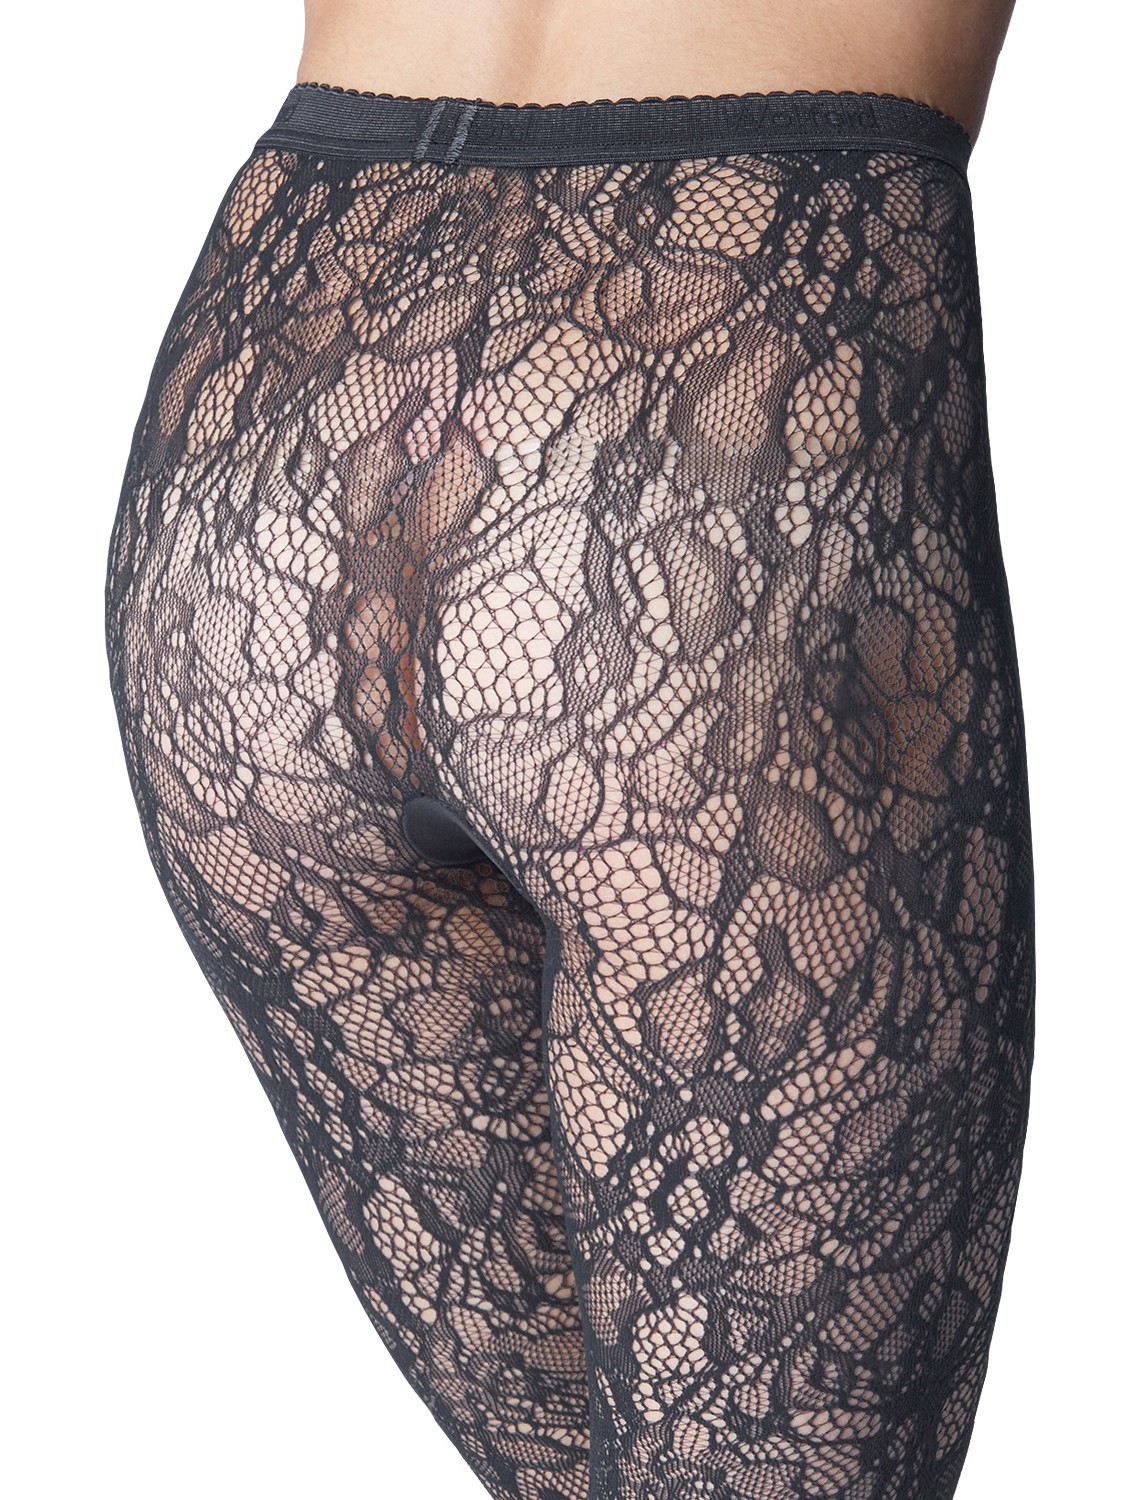 Wolford Clair Fashion Floral Lace Tights In Gray Lyst